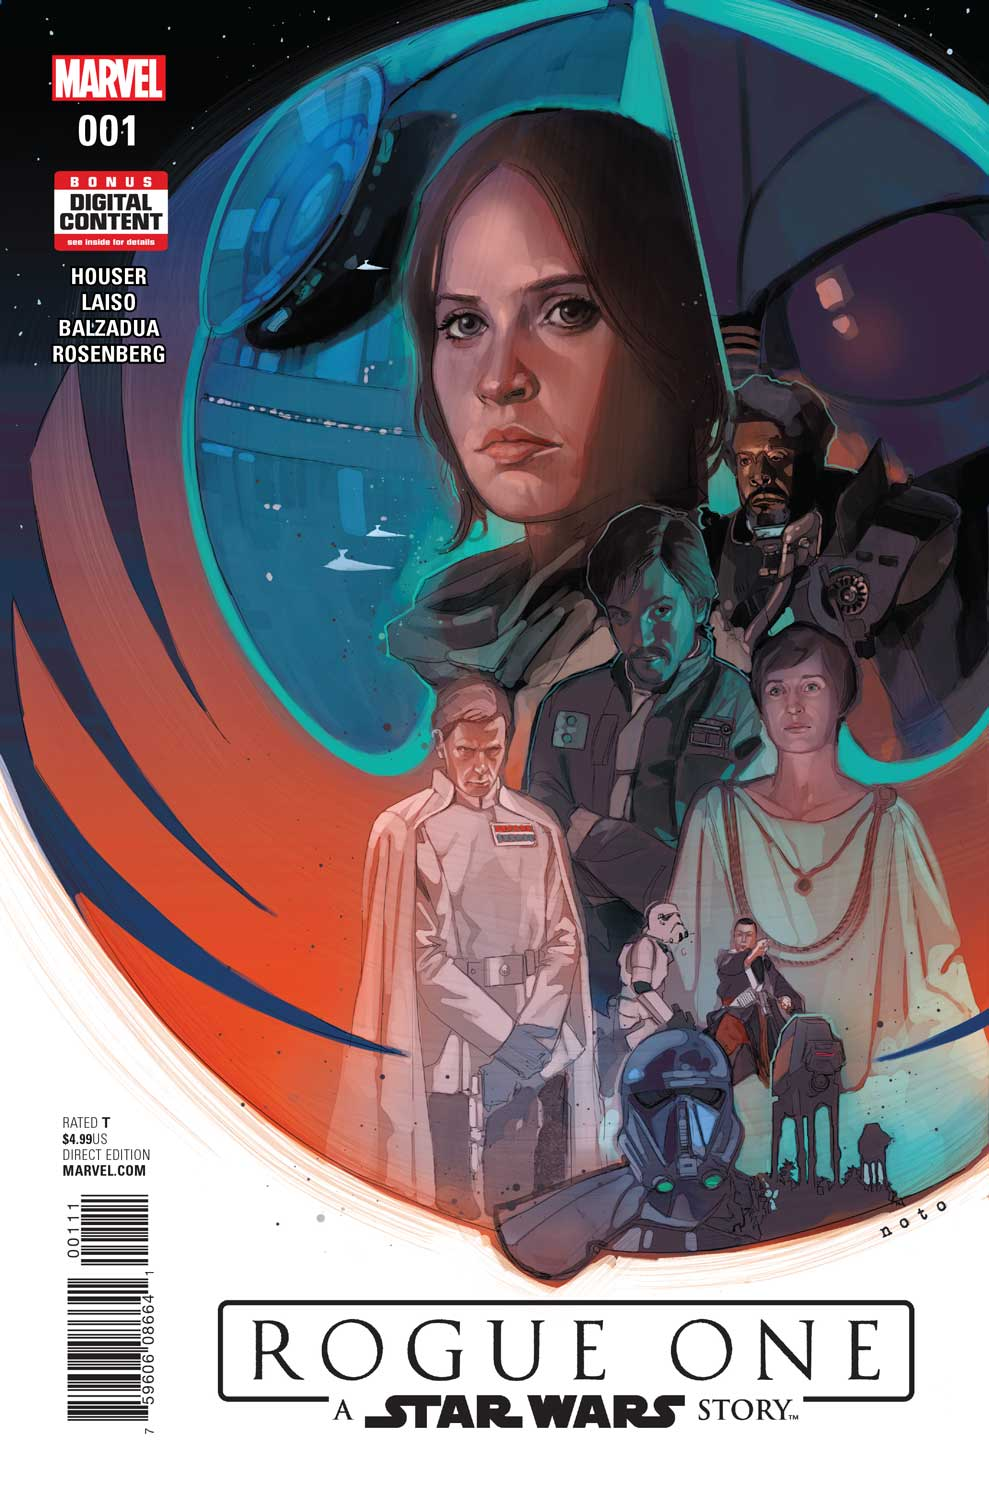 Marvel Releases First Look At Rogue One: A Star Wars Story Adaptation #1